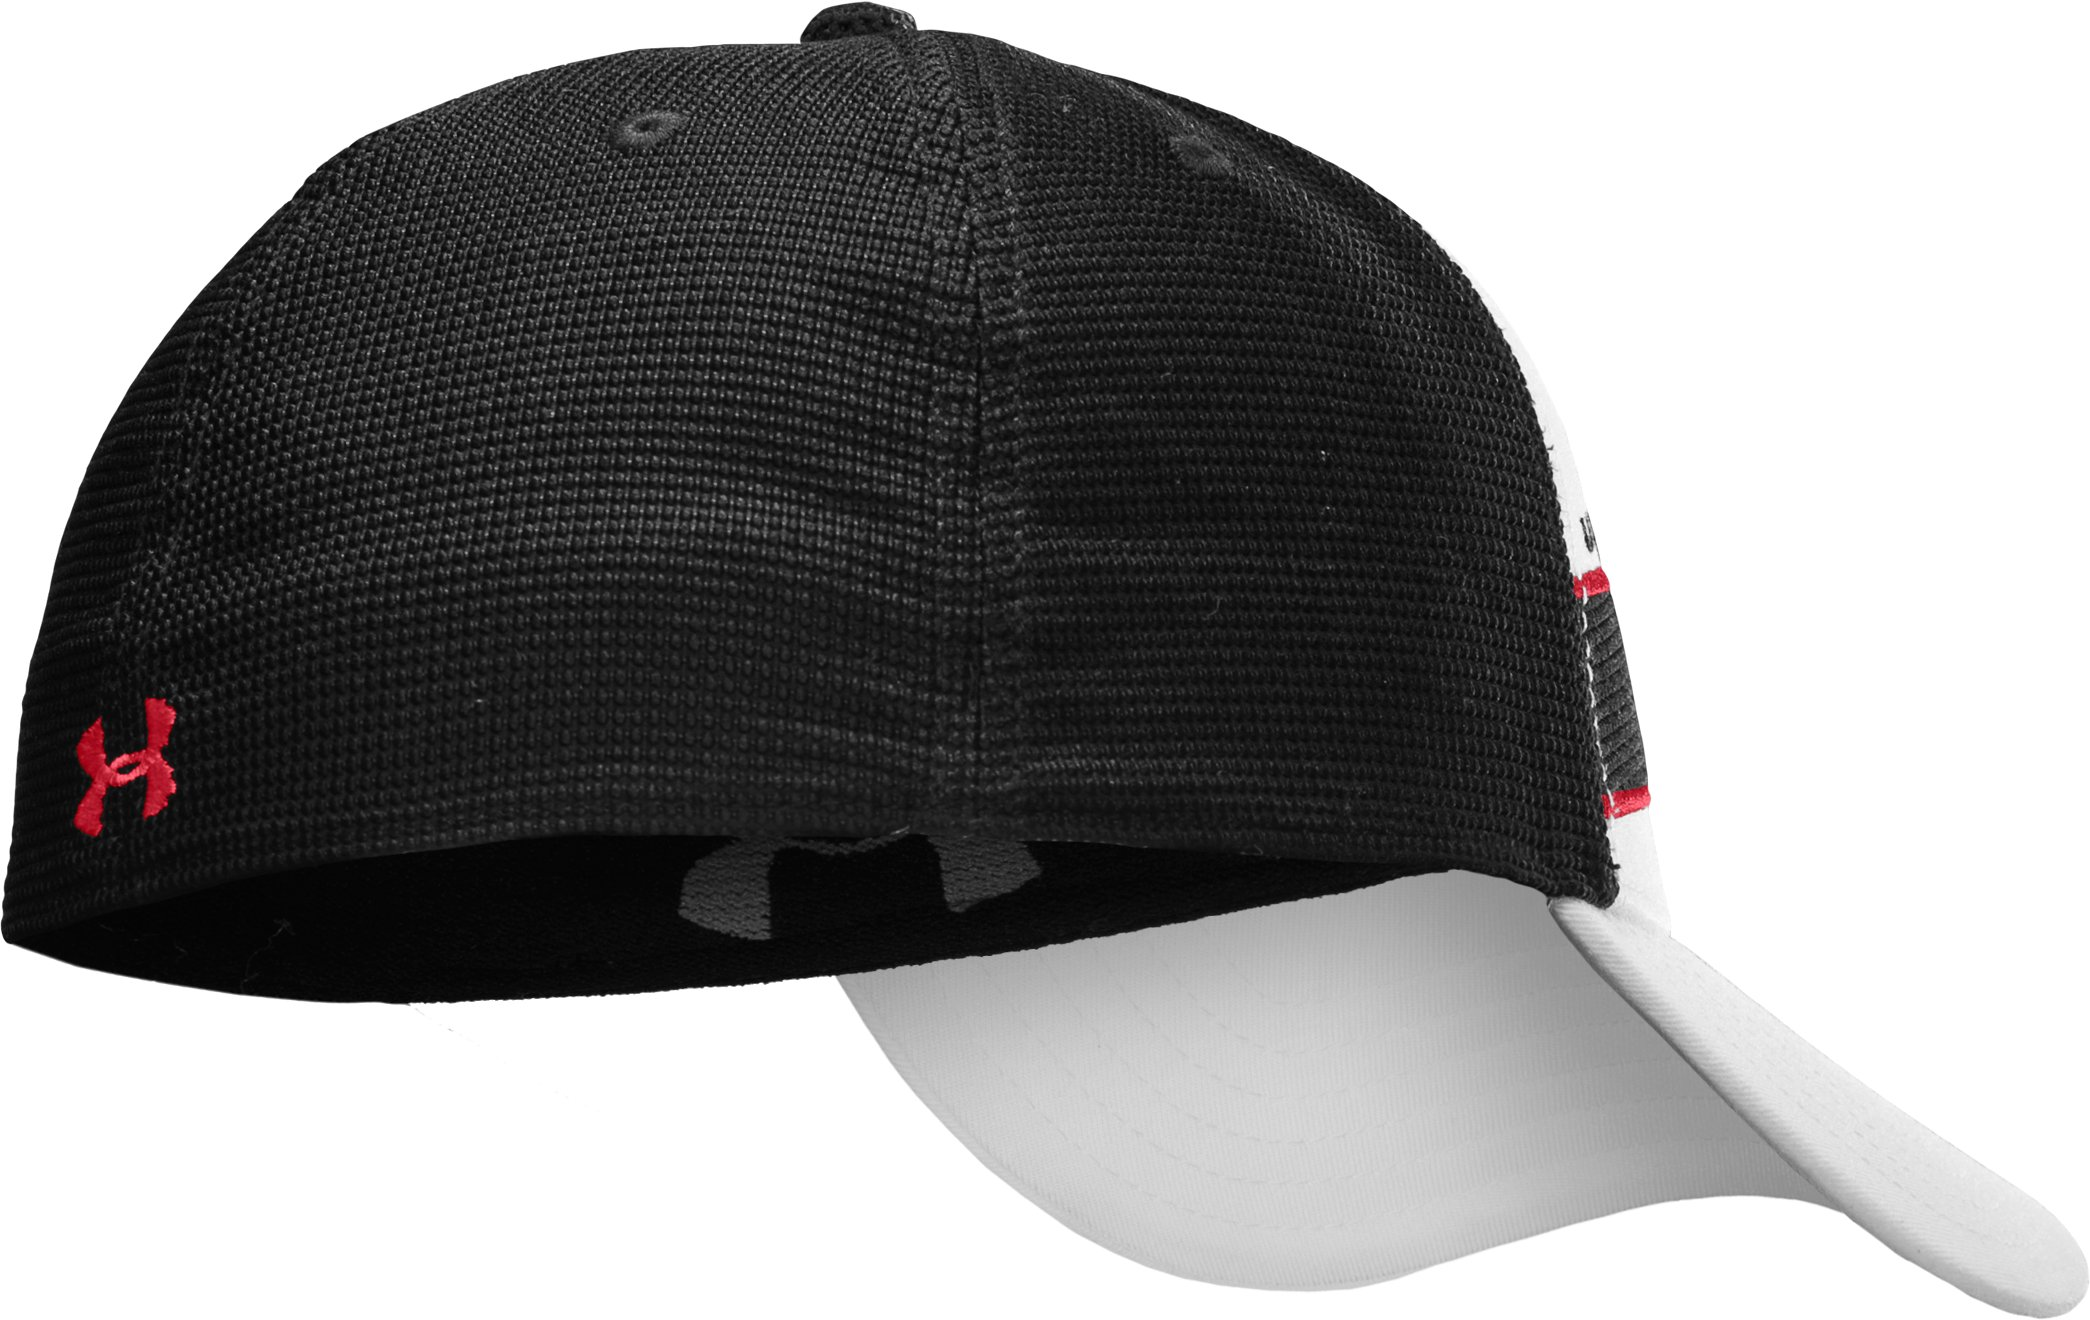 Men's Dauntless Stretch Fit Cap, White